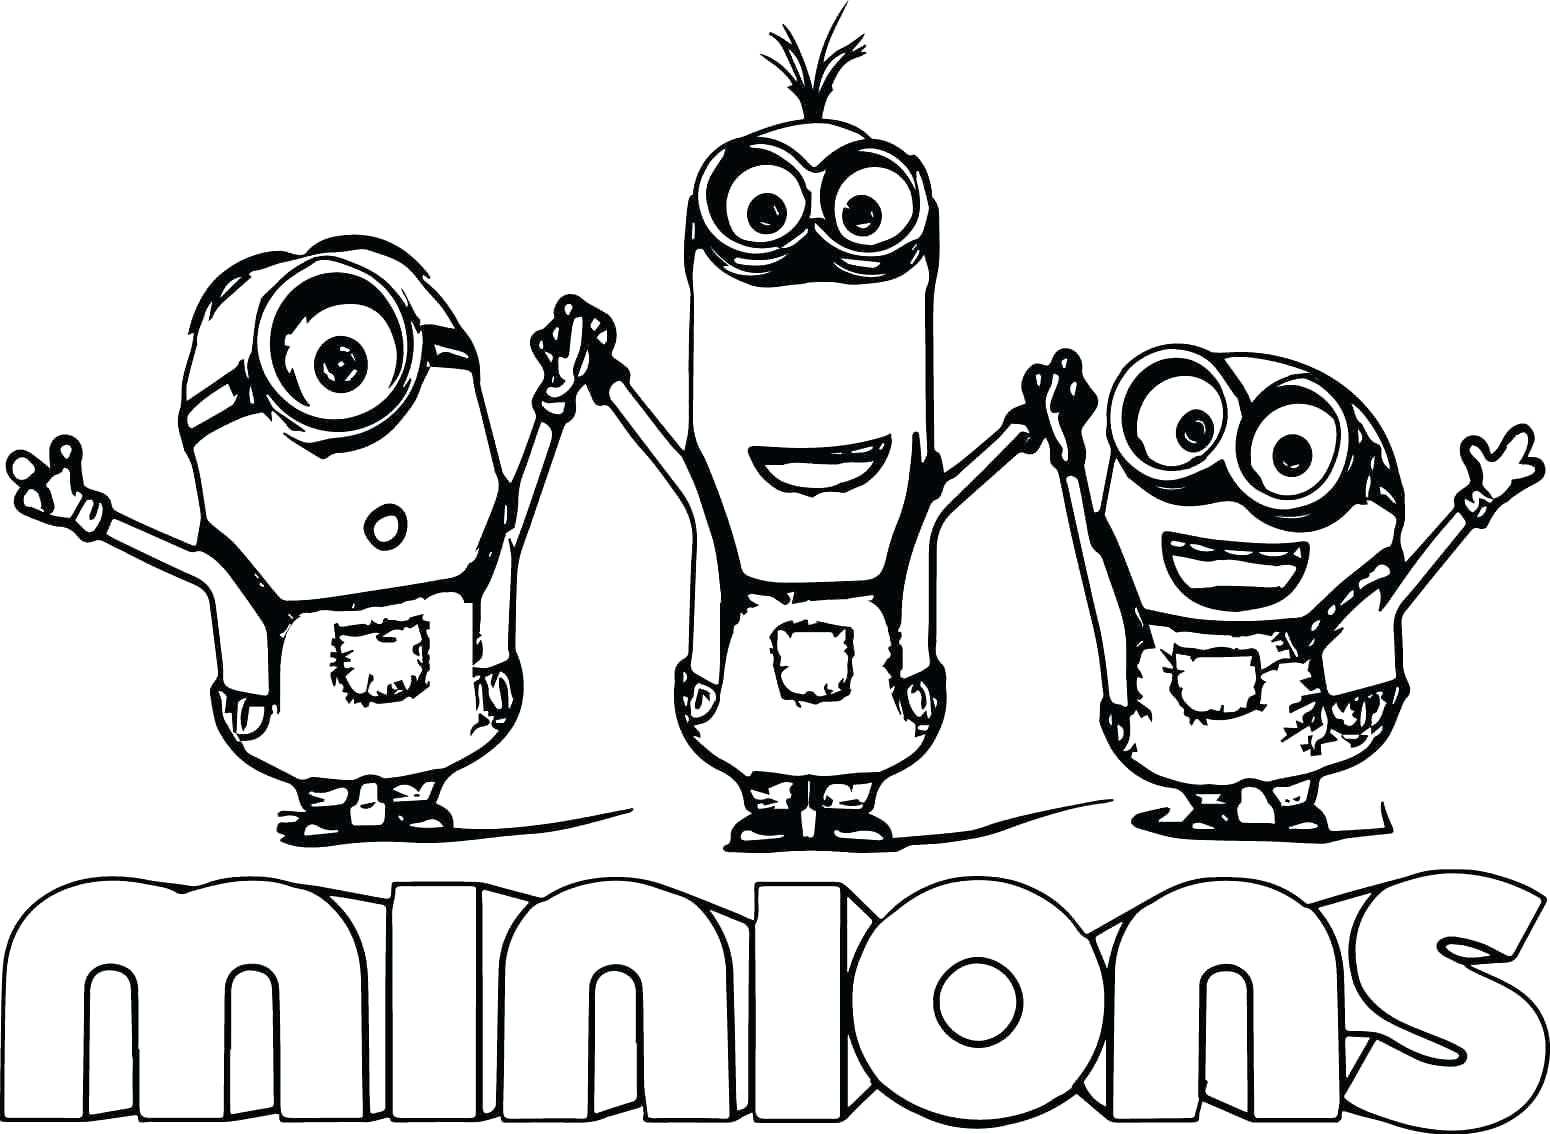 Minions Coloring Pages Cute Bob And Bear Minions Coloring Page Coloring Worksheets